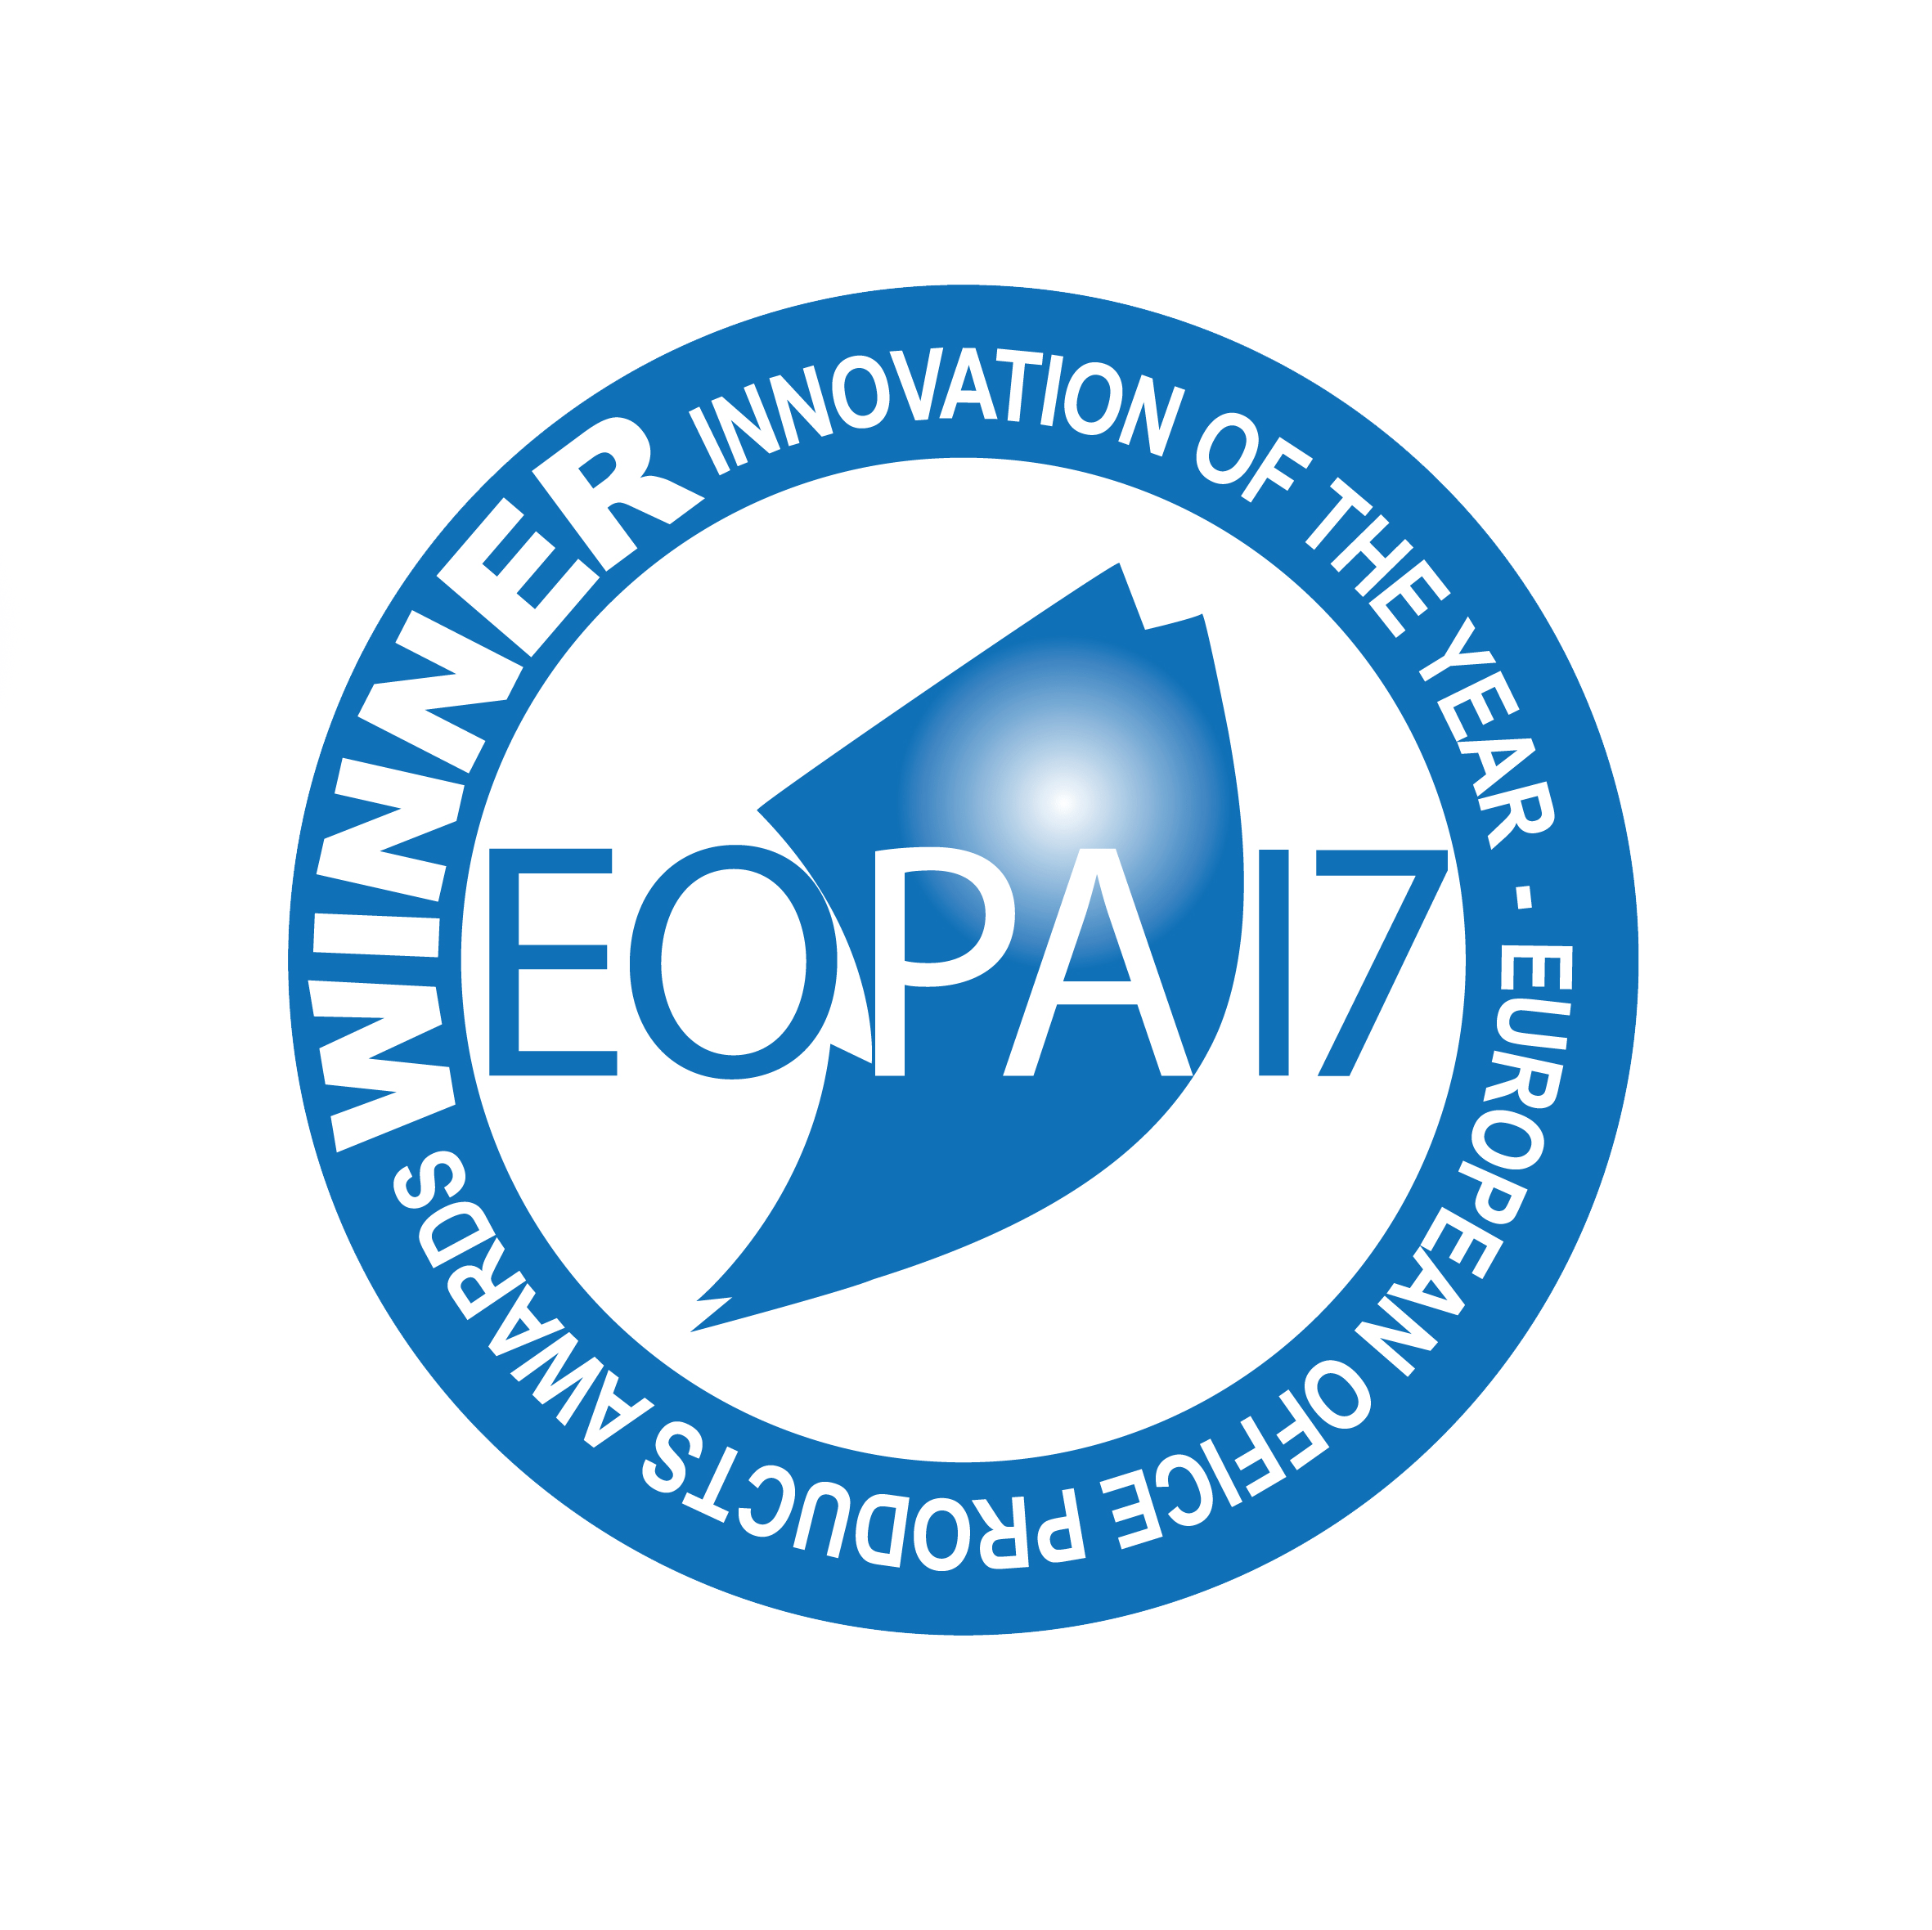 EOPA '17